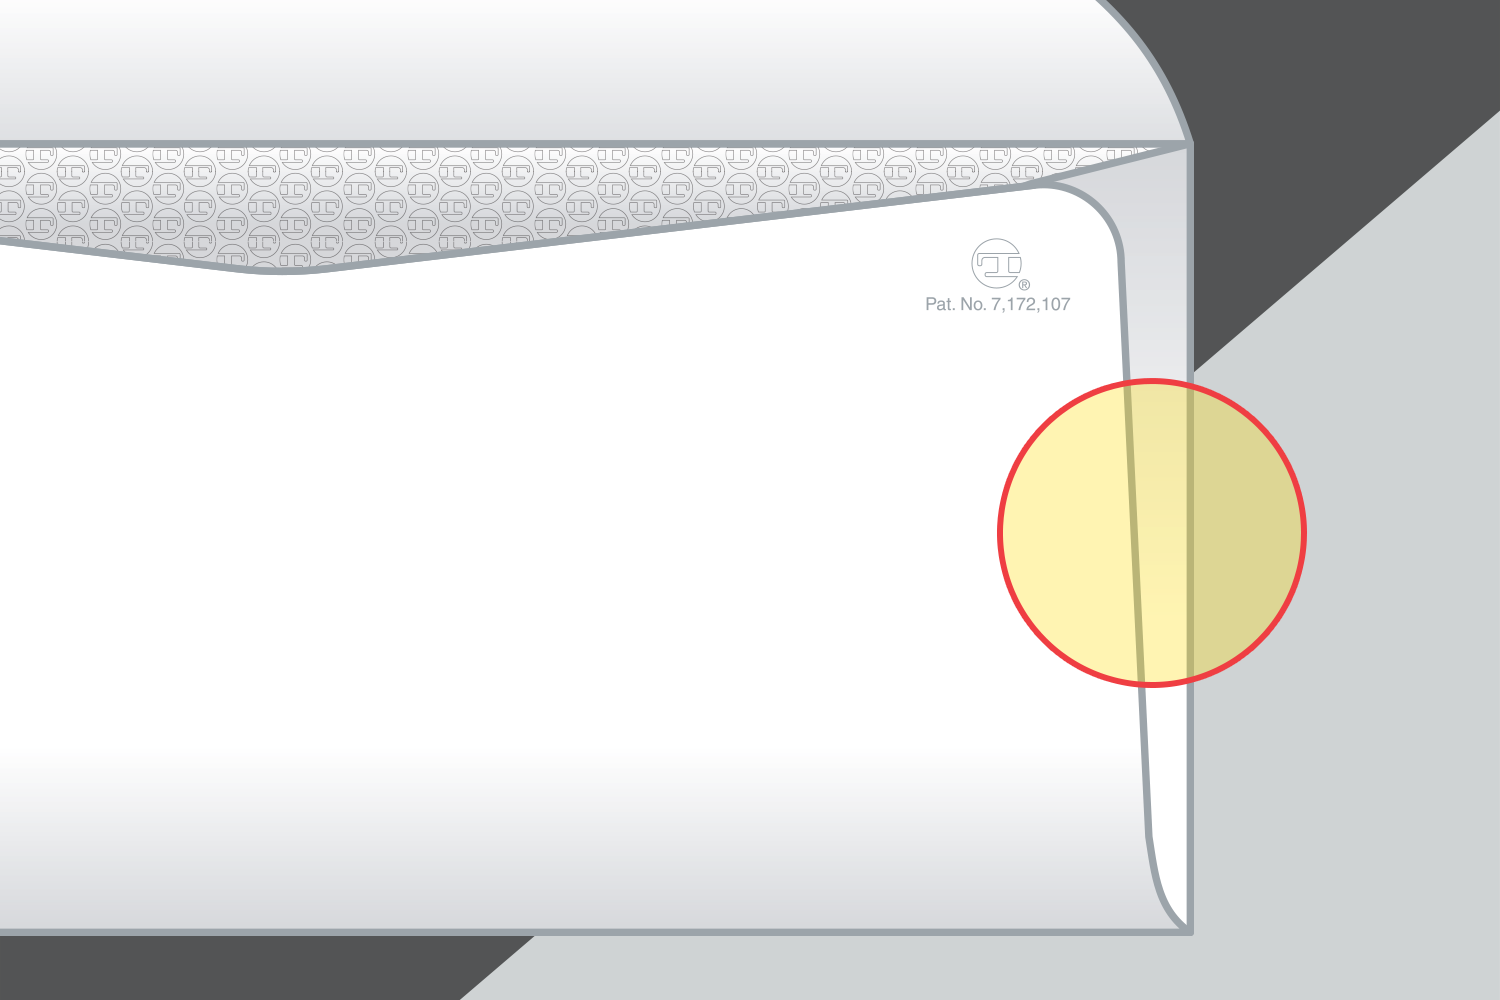 Side-seam overlap profiles designed to glide through USPS's automated equipment